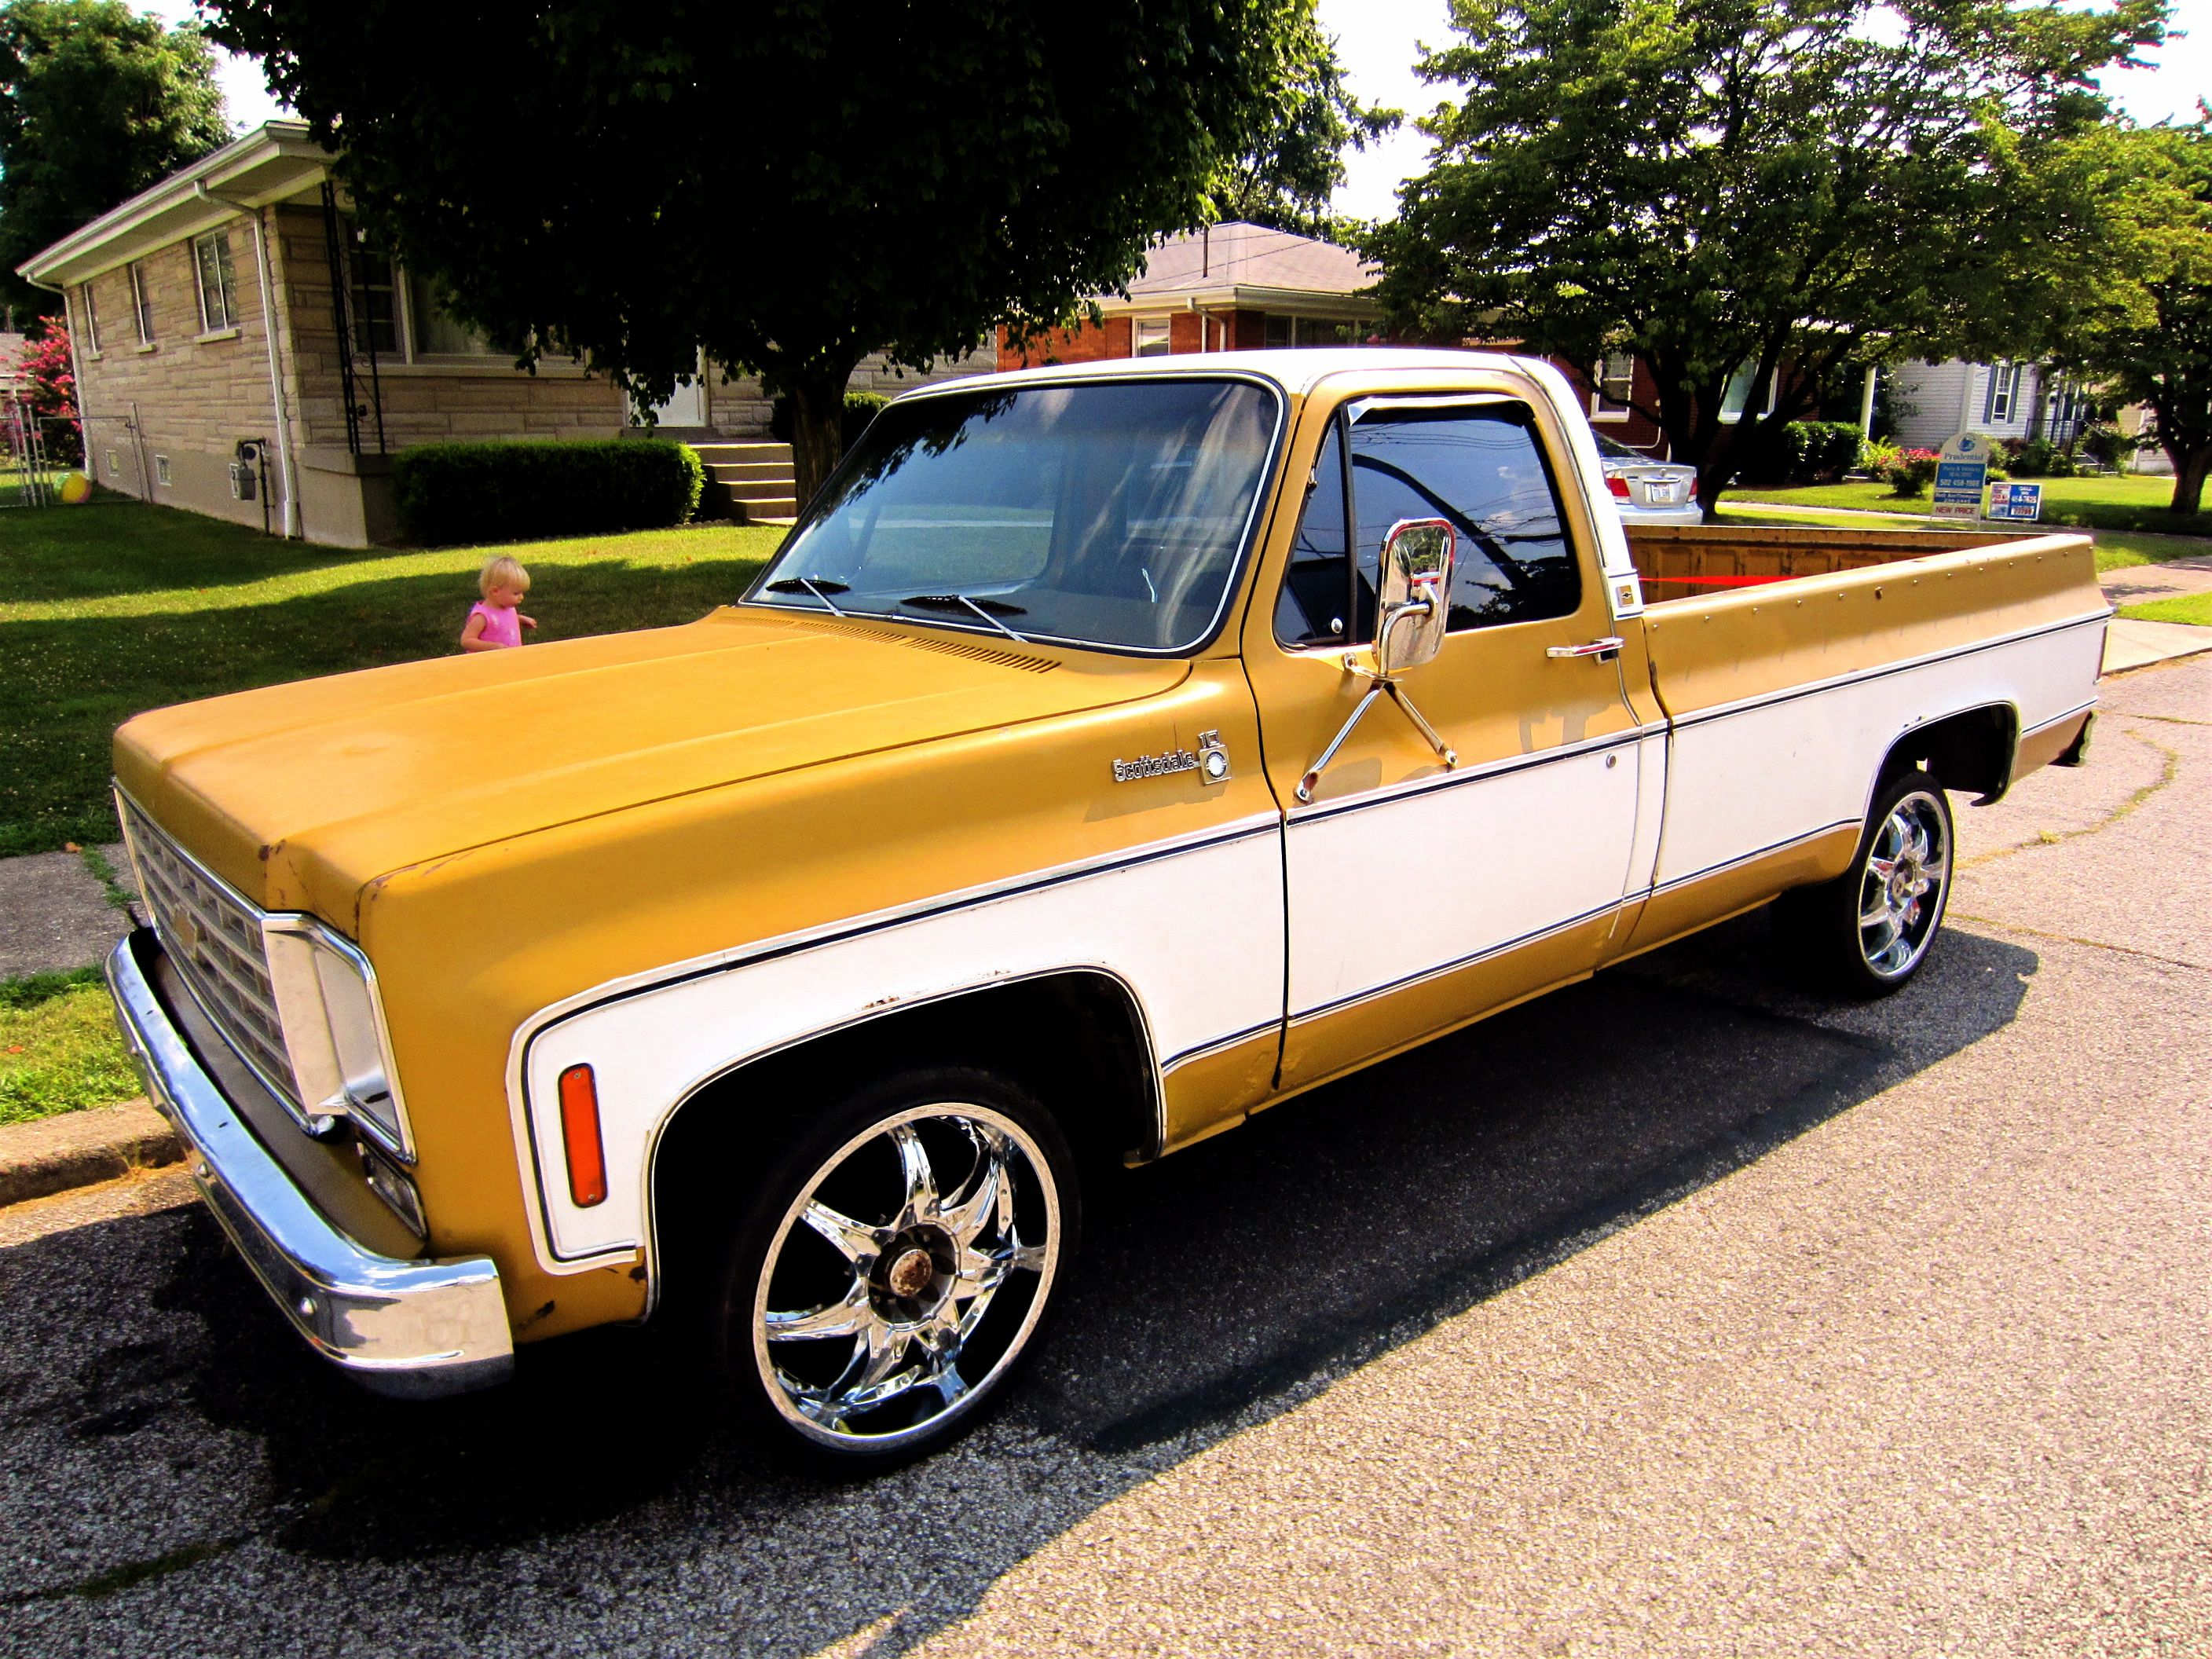 My 1975 Chevy C10 Longbed Maintenance Of Old Vehicles The Material For New Cogs Casters Gears Could Be Cast Polyamide Which I Cast Chevy C10 Old Trucks Chevy